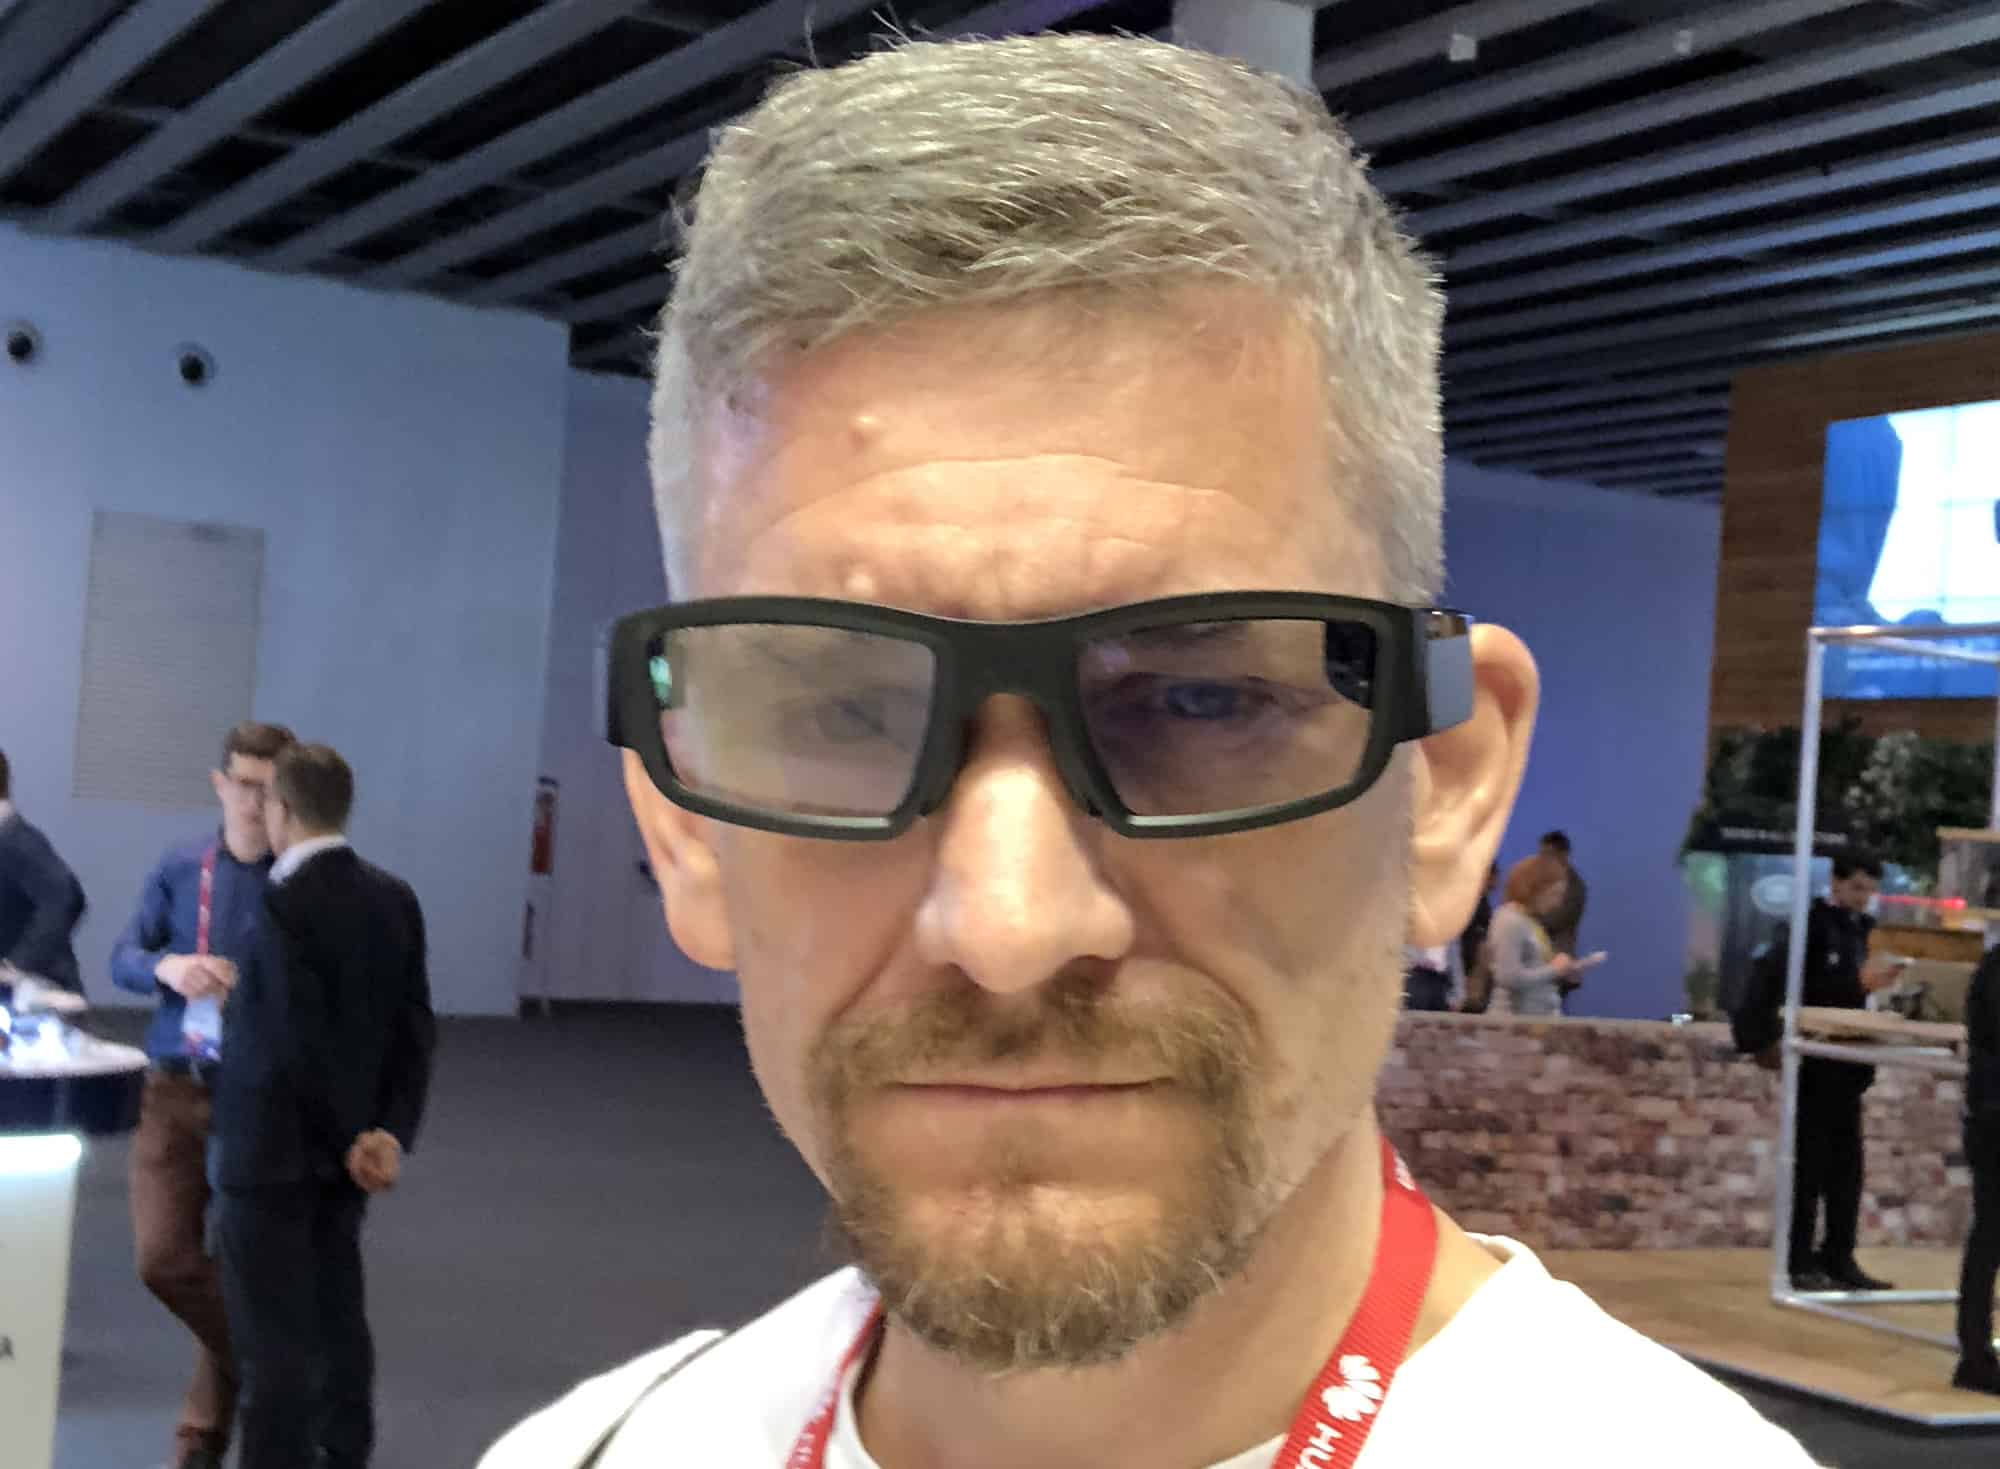 I look dorky even when I'm not wearing smartglasses like Vuzix Blade AR glasses.